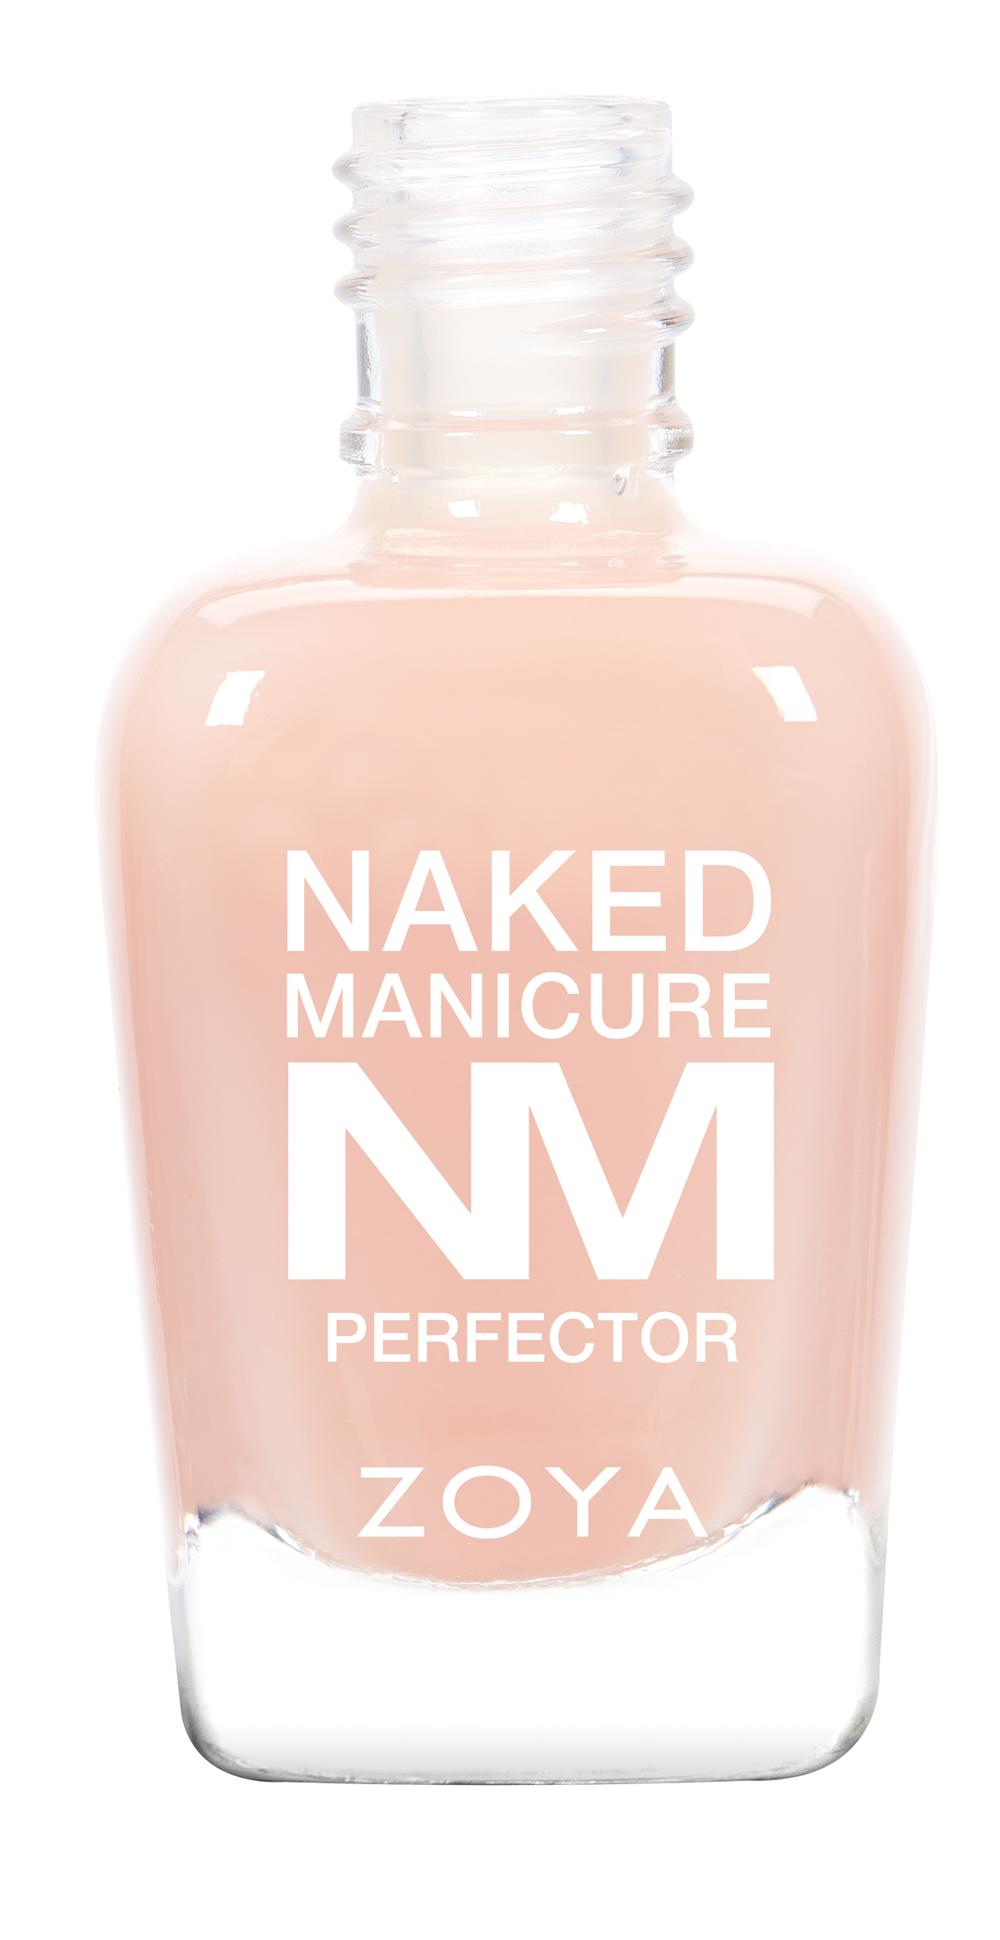 Zoya Naked Manicure Buff Perfector product impression